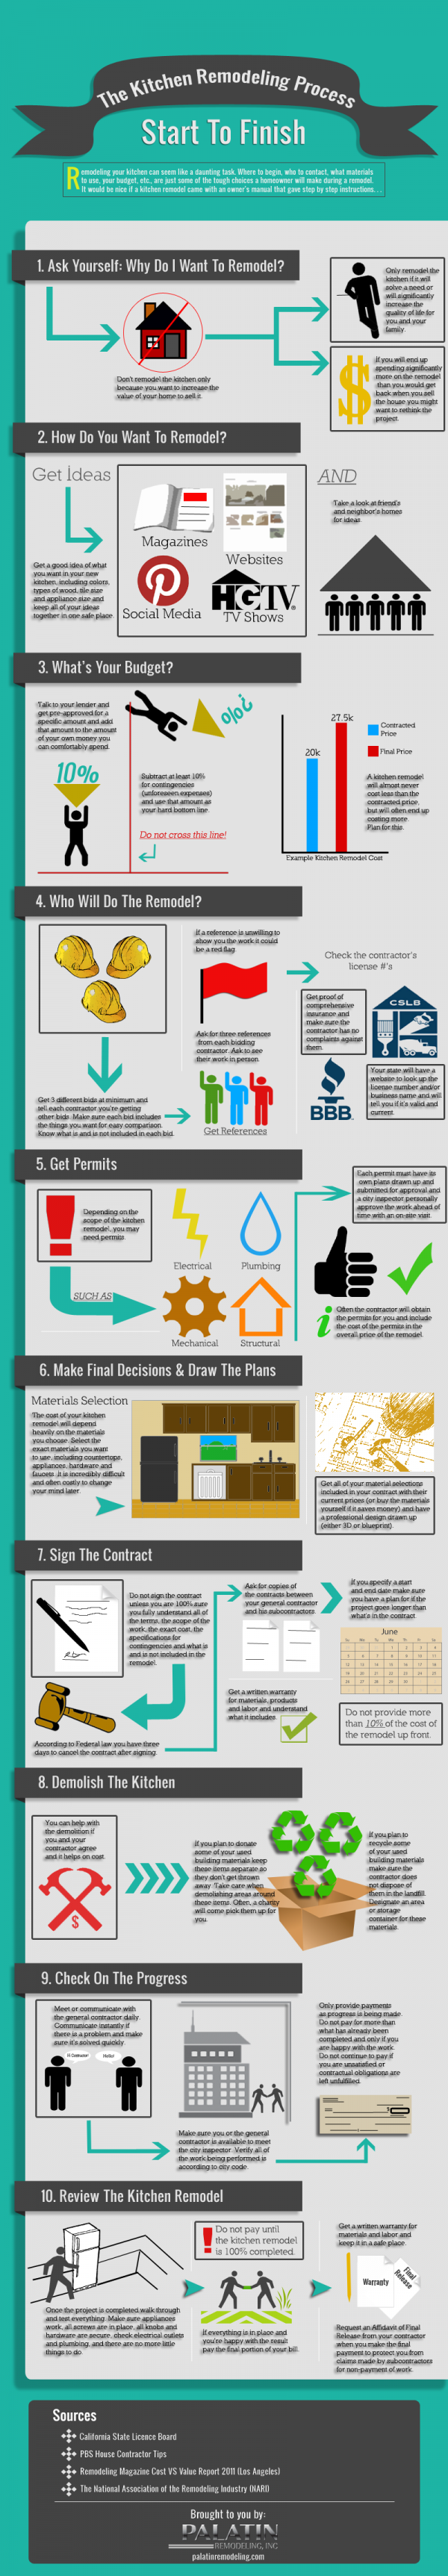 Bathroom Remodel Where To Start helpful infographic on the kitchen remodeling process from start